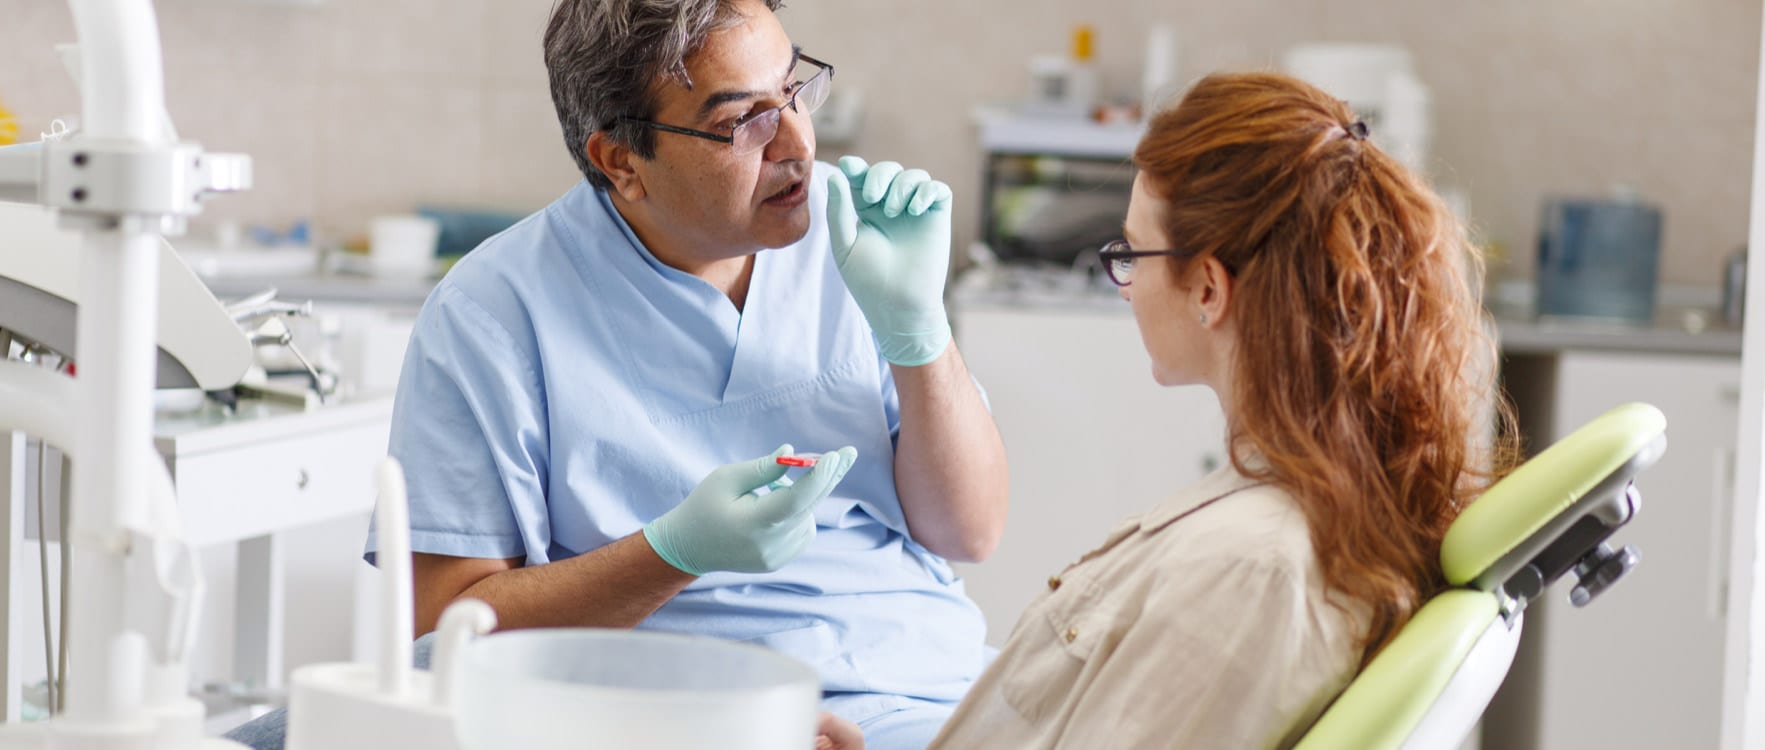 Male orthodontist talking to a female patient in an operating room